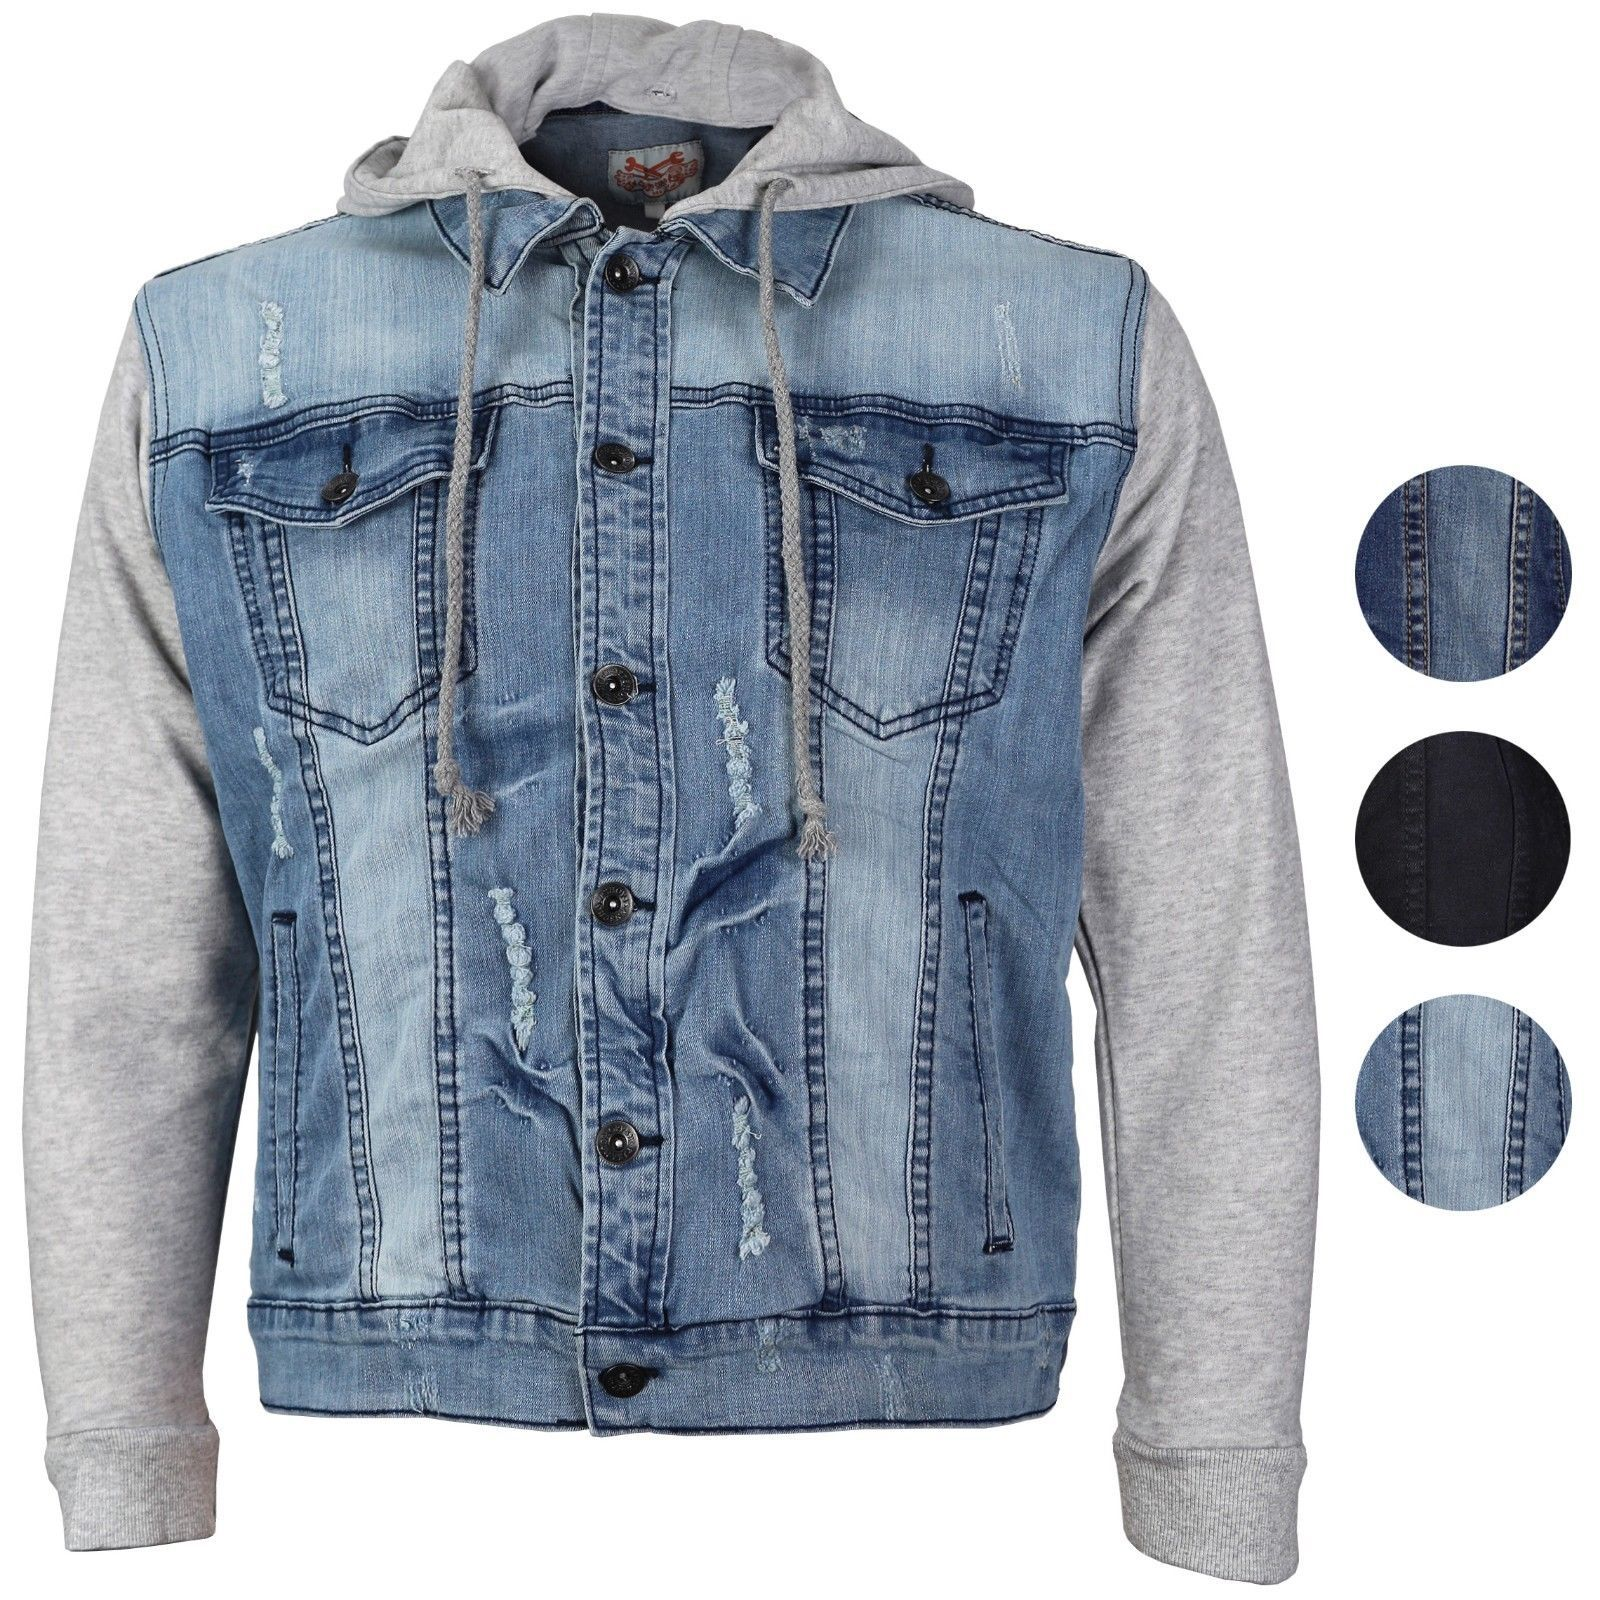 CS Men's Distressed Ripped Stretch Denim Jean Jacket with Removable Hood